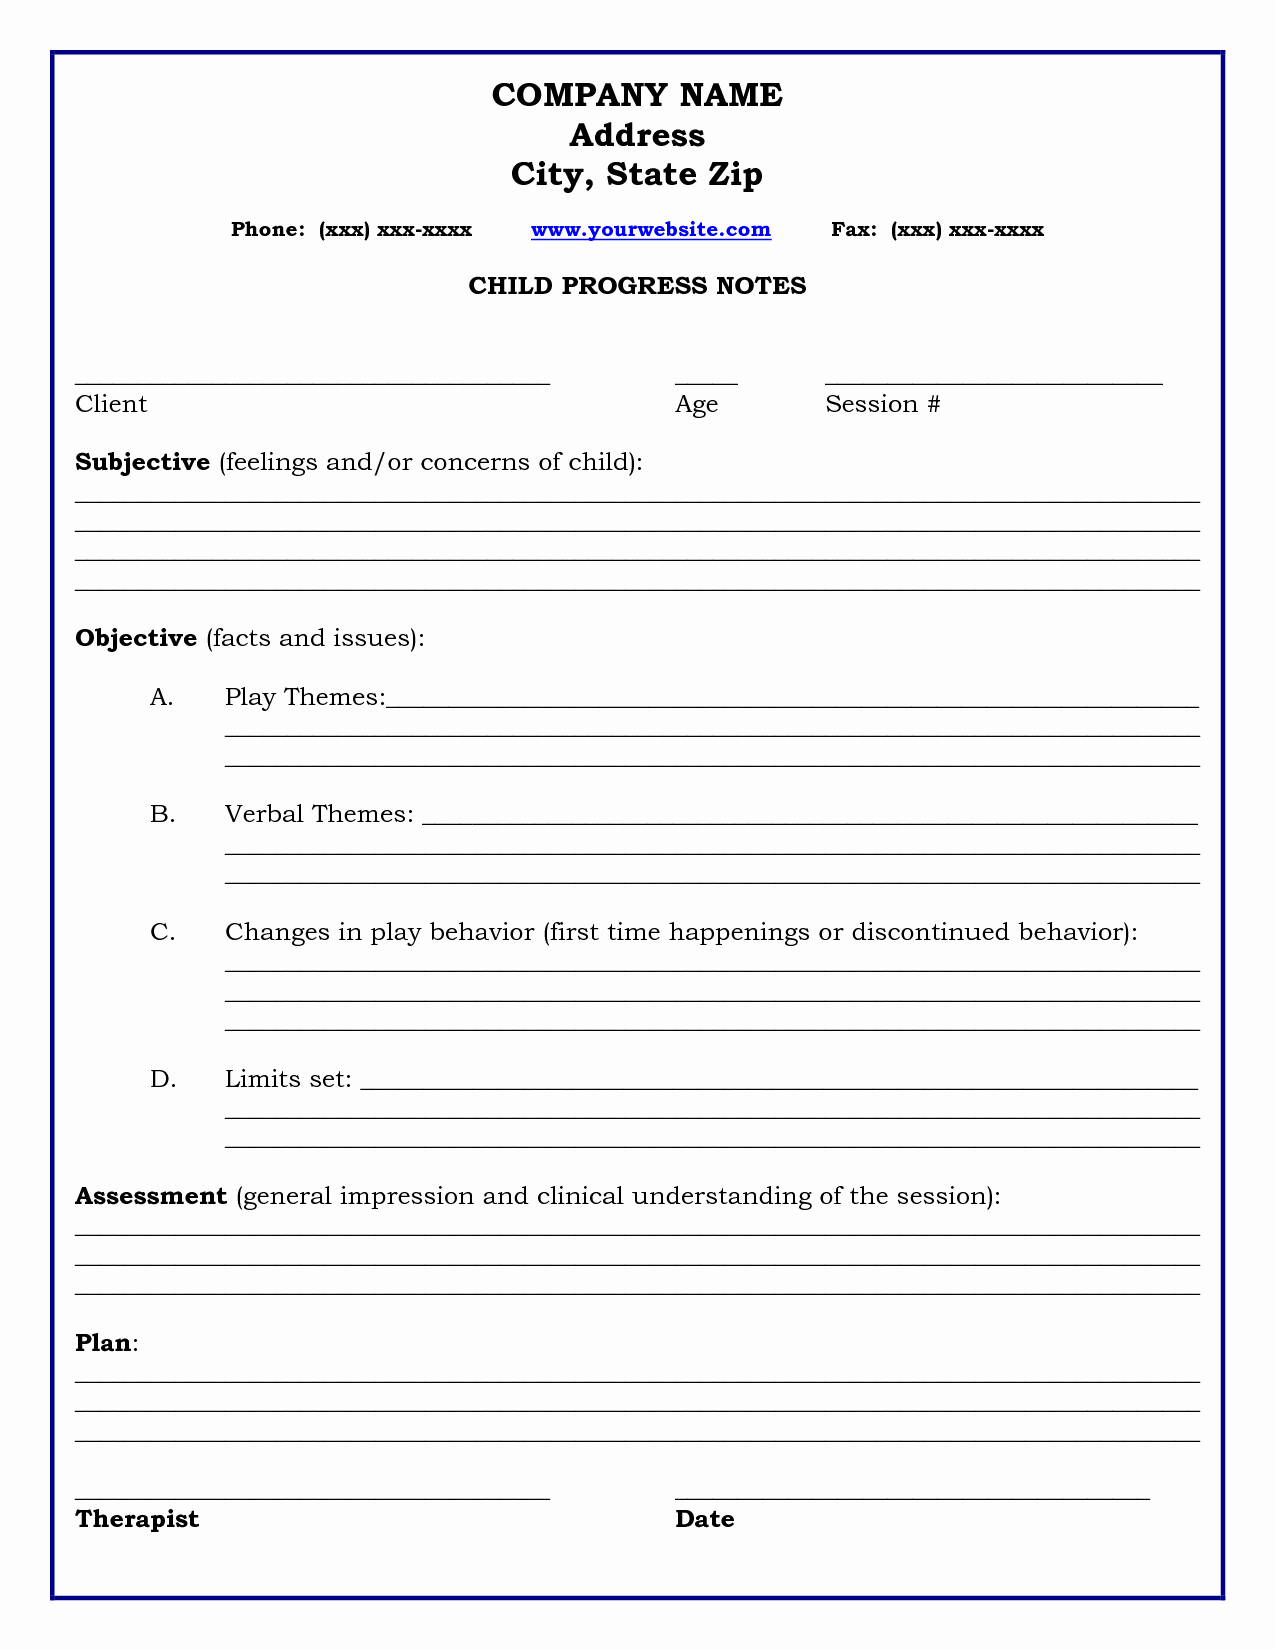 Free therapy Notes Template Beautiful therapy Progress Note Template